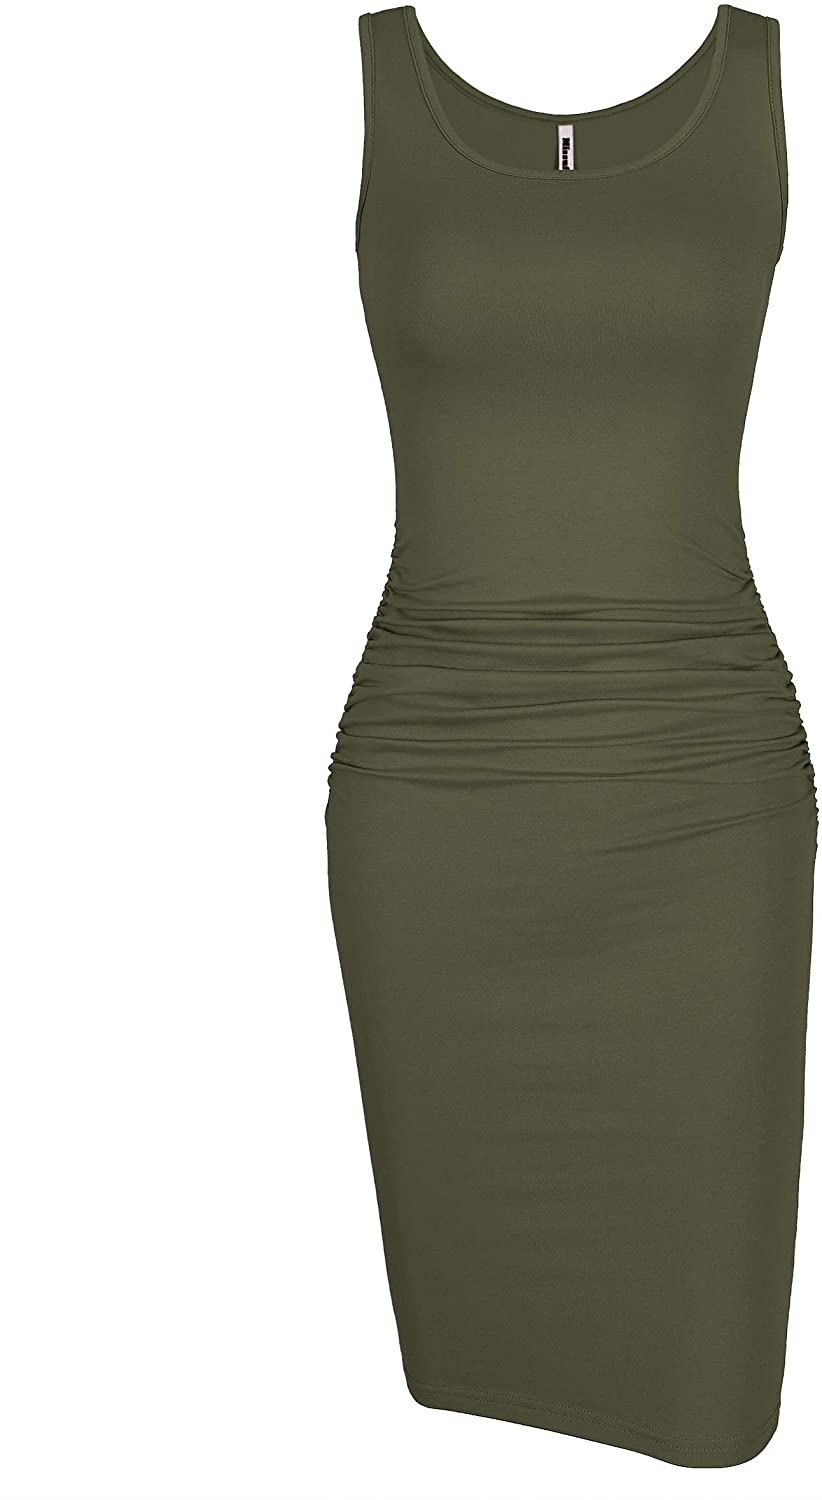 Missufe Women's Sleeveless Tank Ruched Casual Knee Length Bodycon Sundress Basic Fitted Dress